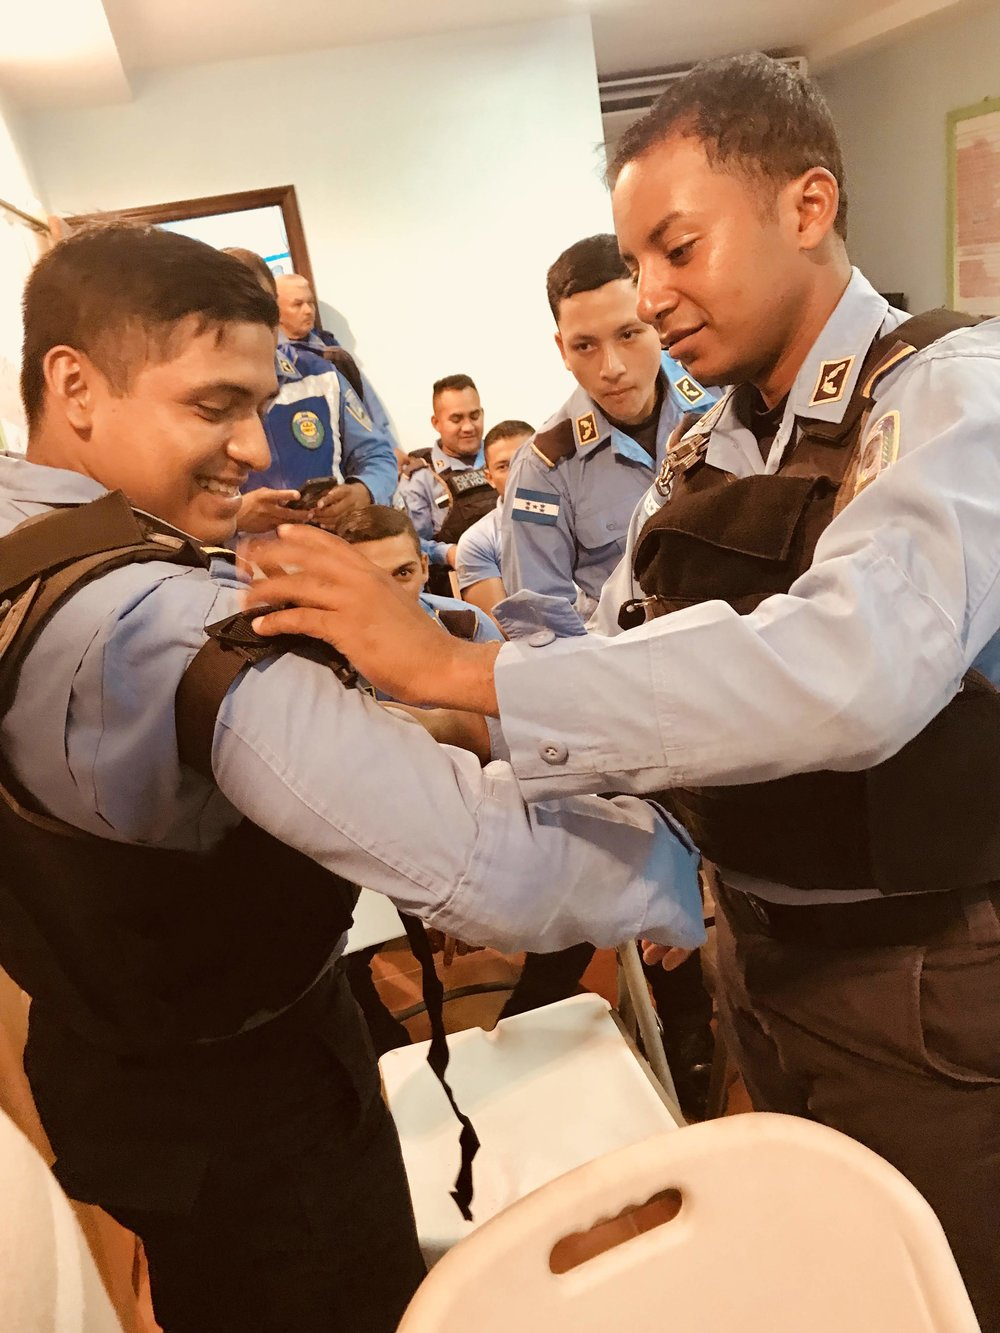 Connect Global First Responder Training in La Ceiba Honduras helped many officers learn how to provide life saving treatment to their brothers and sisters on the police force.